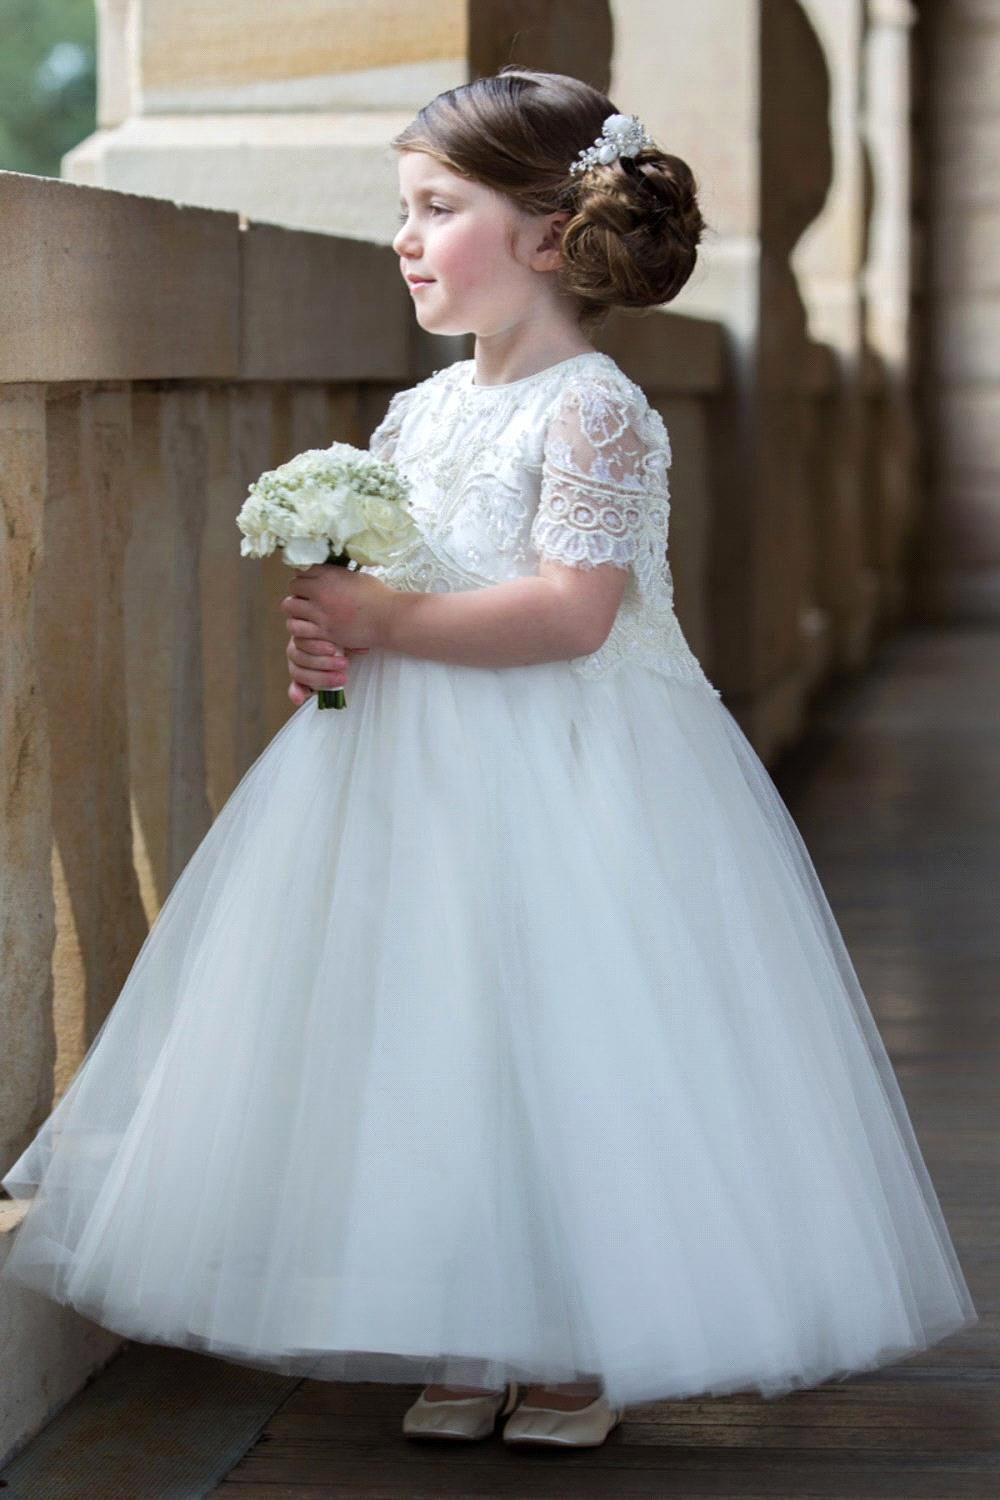 Cute White/Ivory Ball Gown Lace Flower Girl Dresses 2017 For Wedding ...